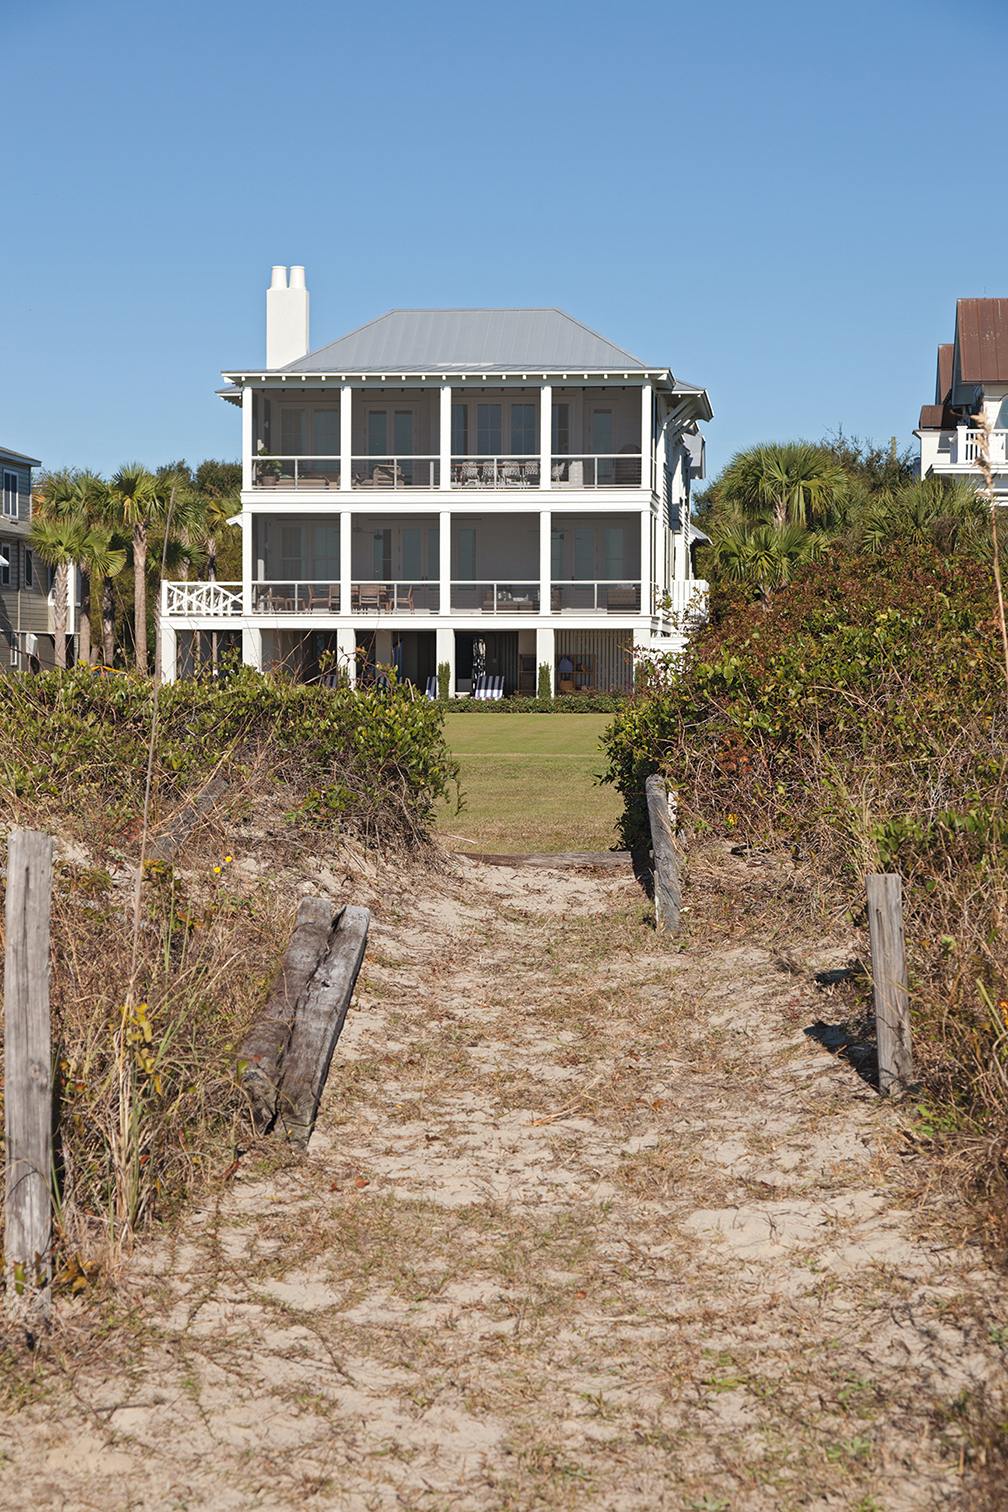 ...while the beachfront façade is a classic, porch-perfect beach house.